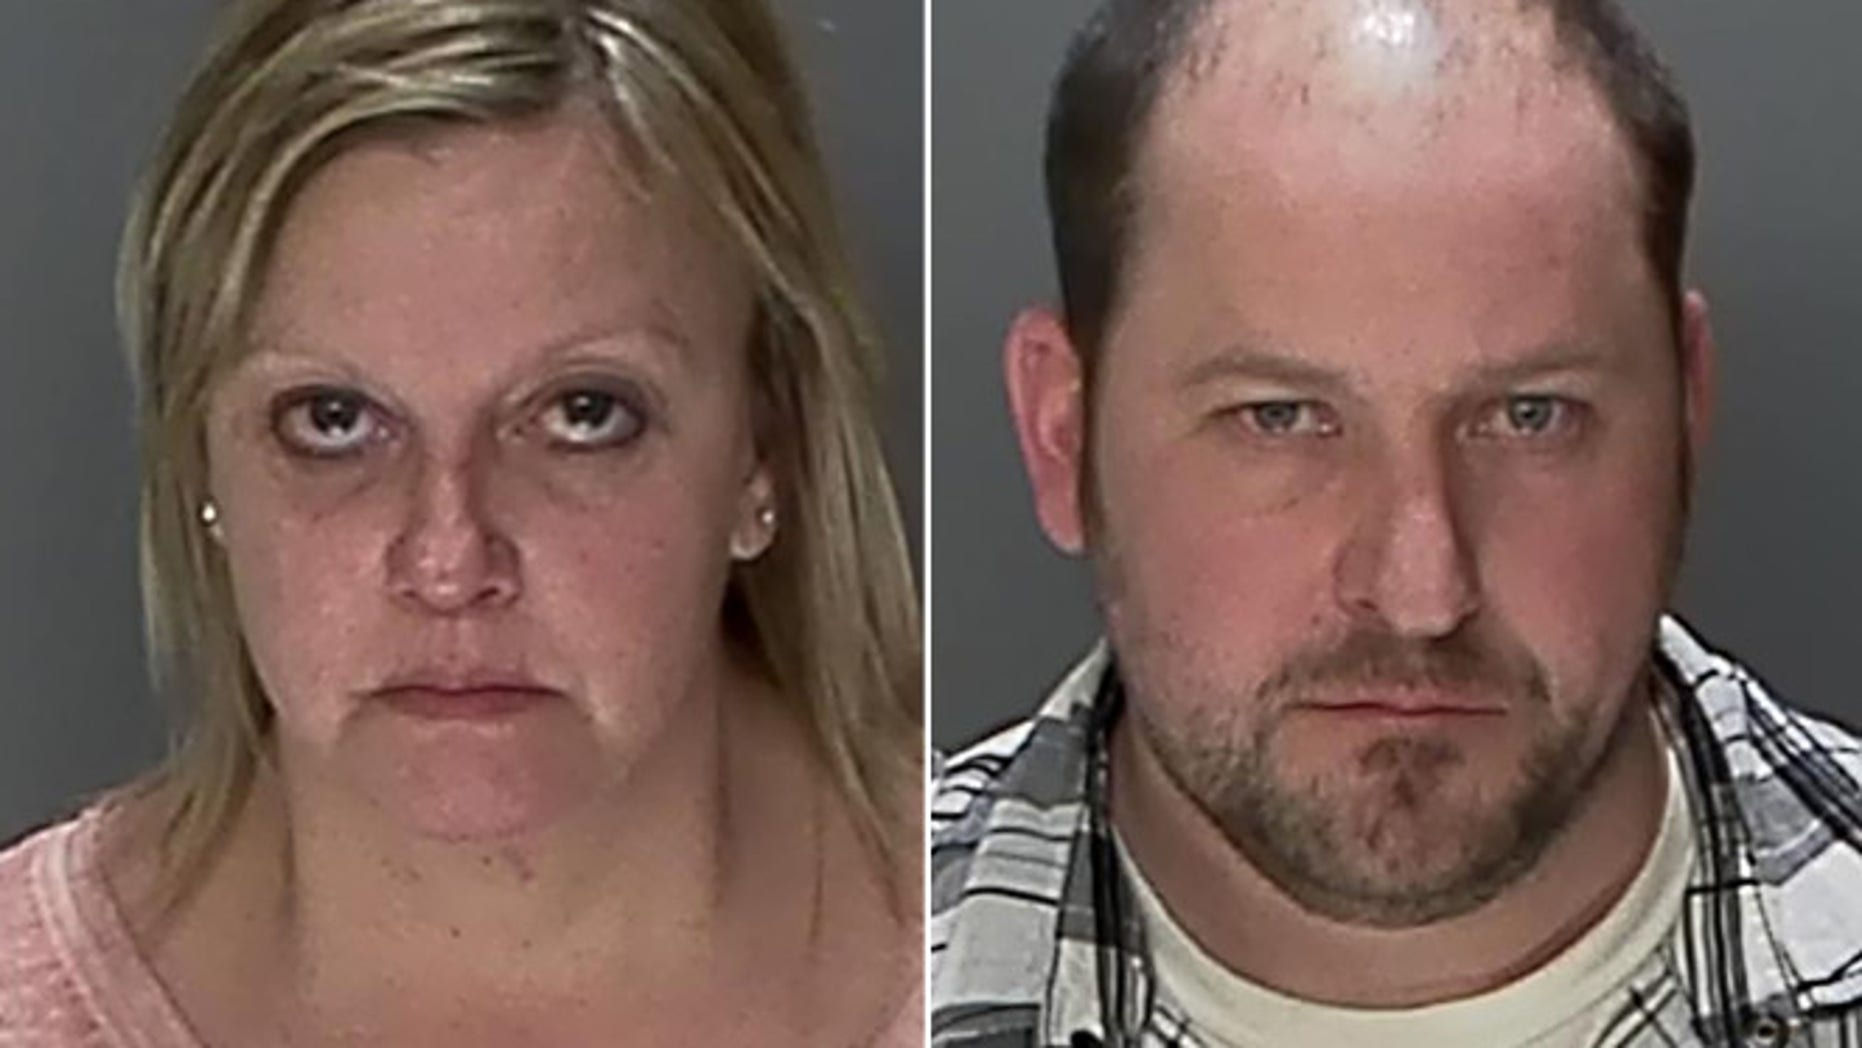 Teresa M. Kohn and Tyler V. Boehm were arrested after they were joking about joining the mile high club on a plane.